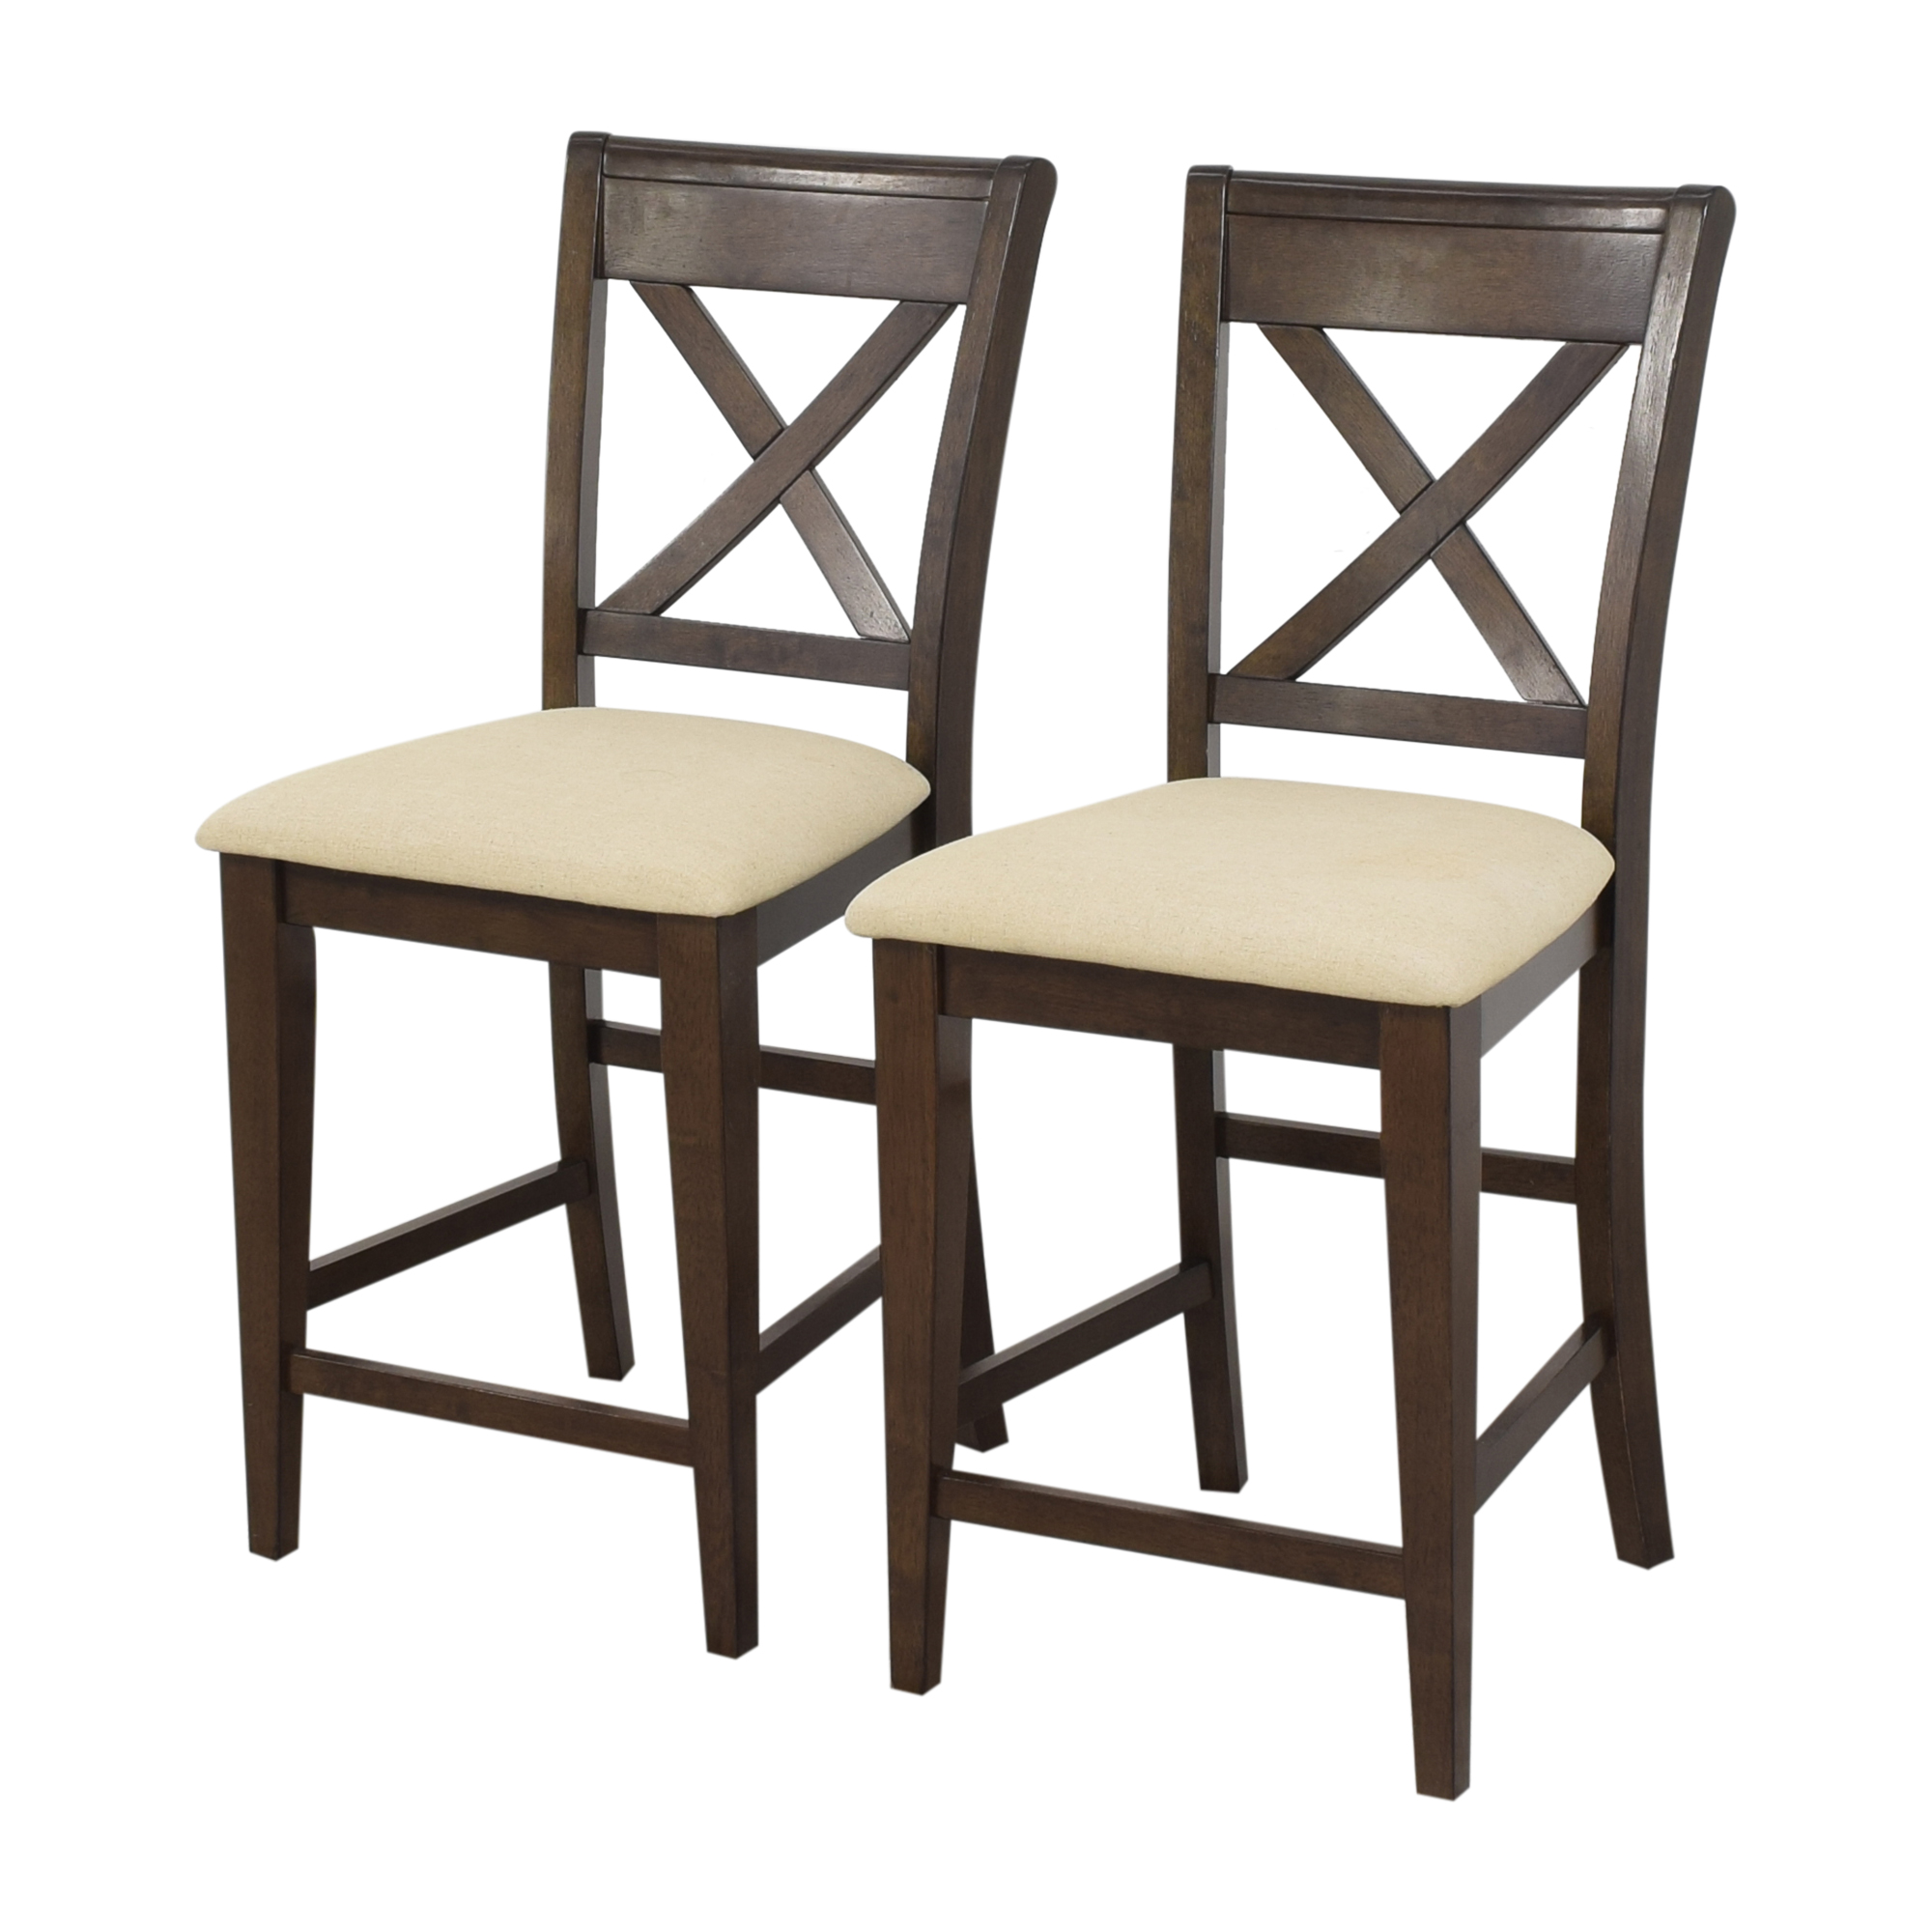 buy Raymour & Flanigan Raymour & Flanigan Upholstered Stools online